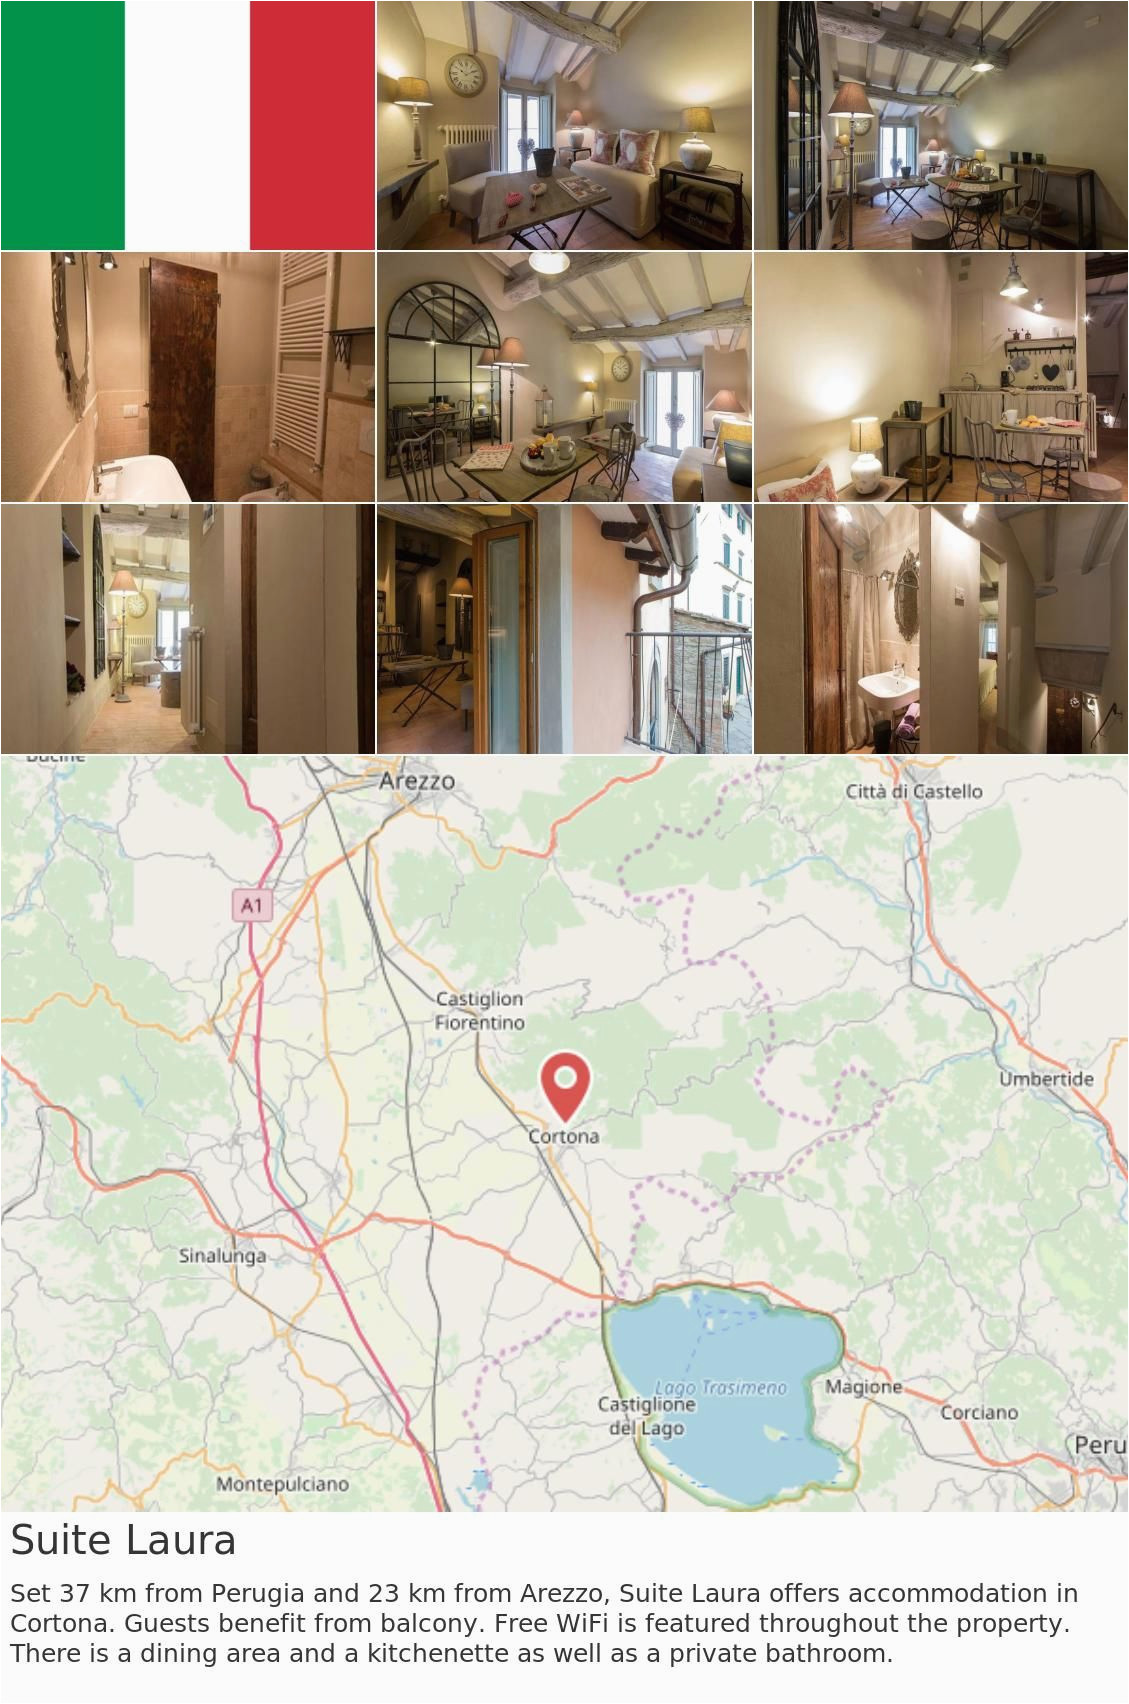 europe italy cortona suite laura set 37 km from perugia and 23 km